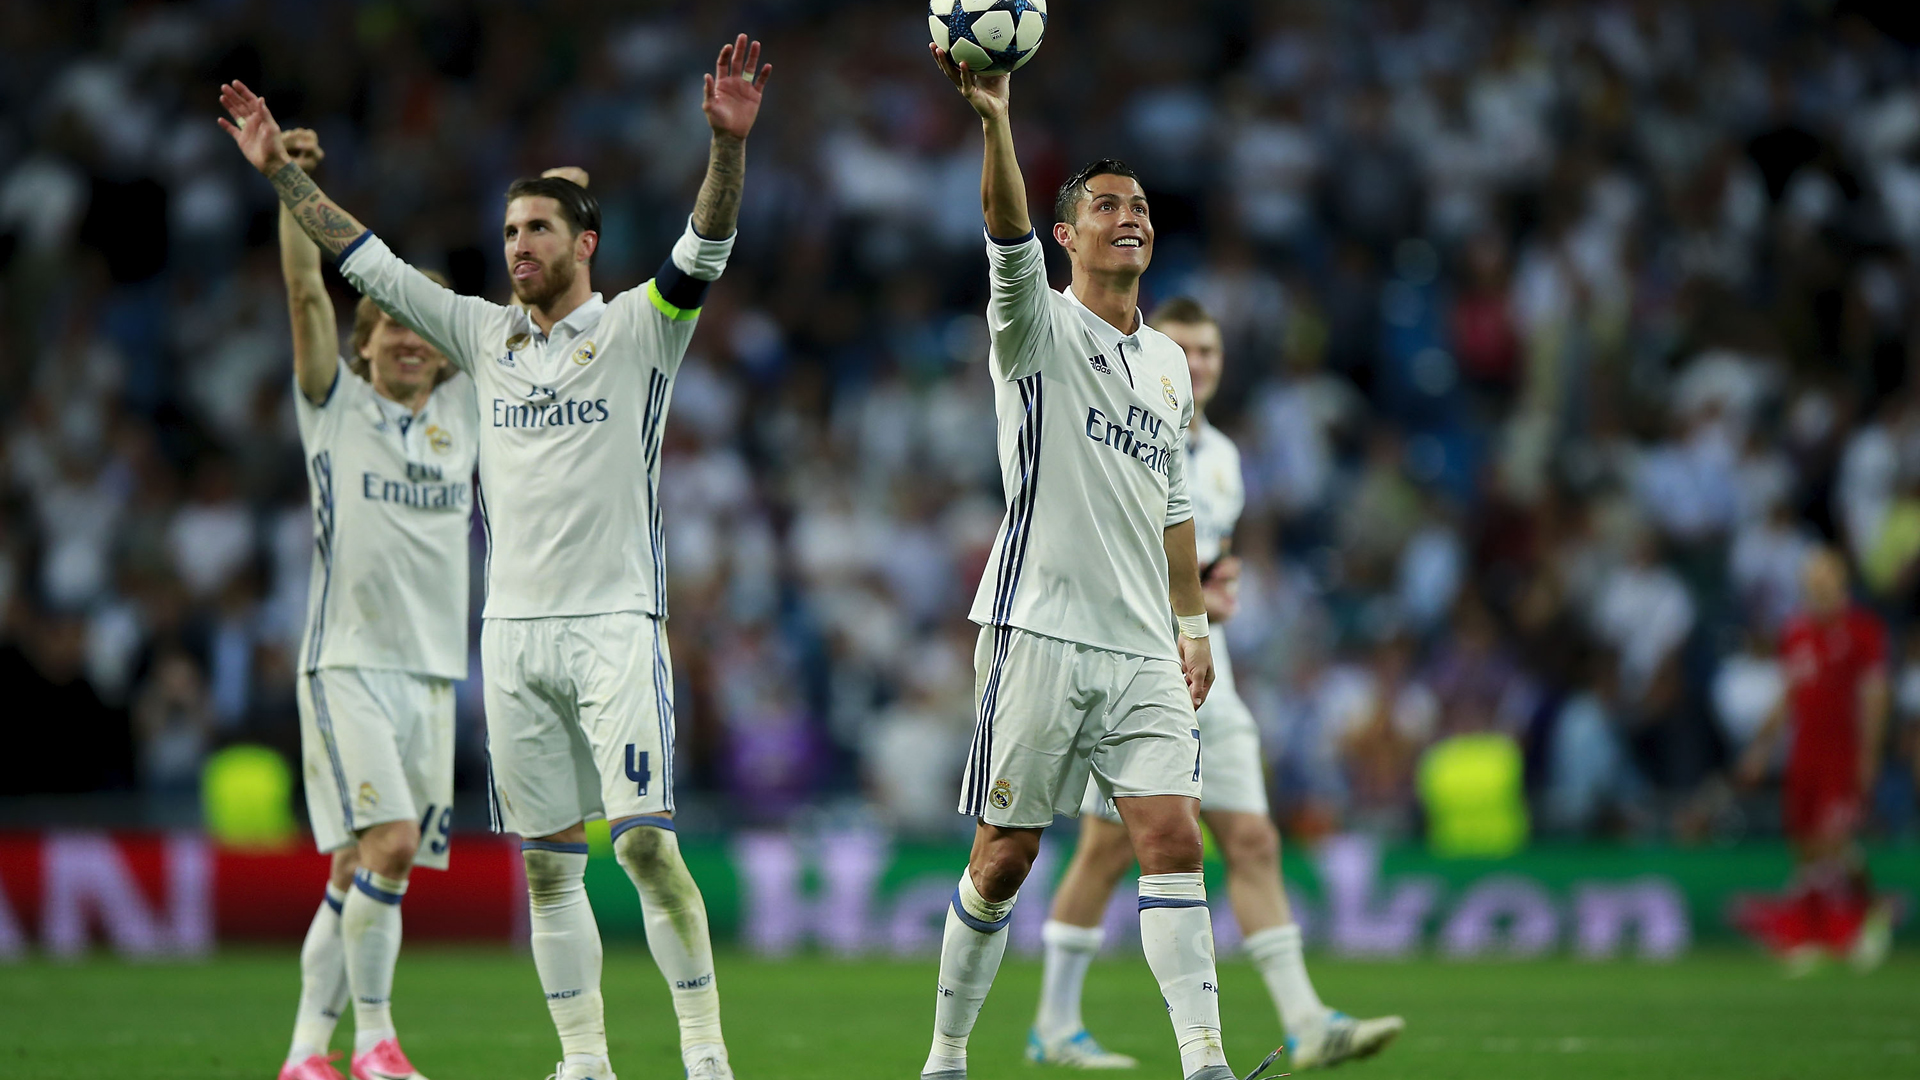 Real Madrid see off 10-man Bayern Munich 4-2 after extra